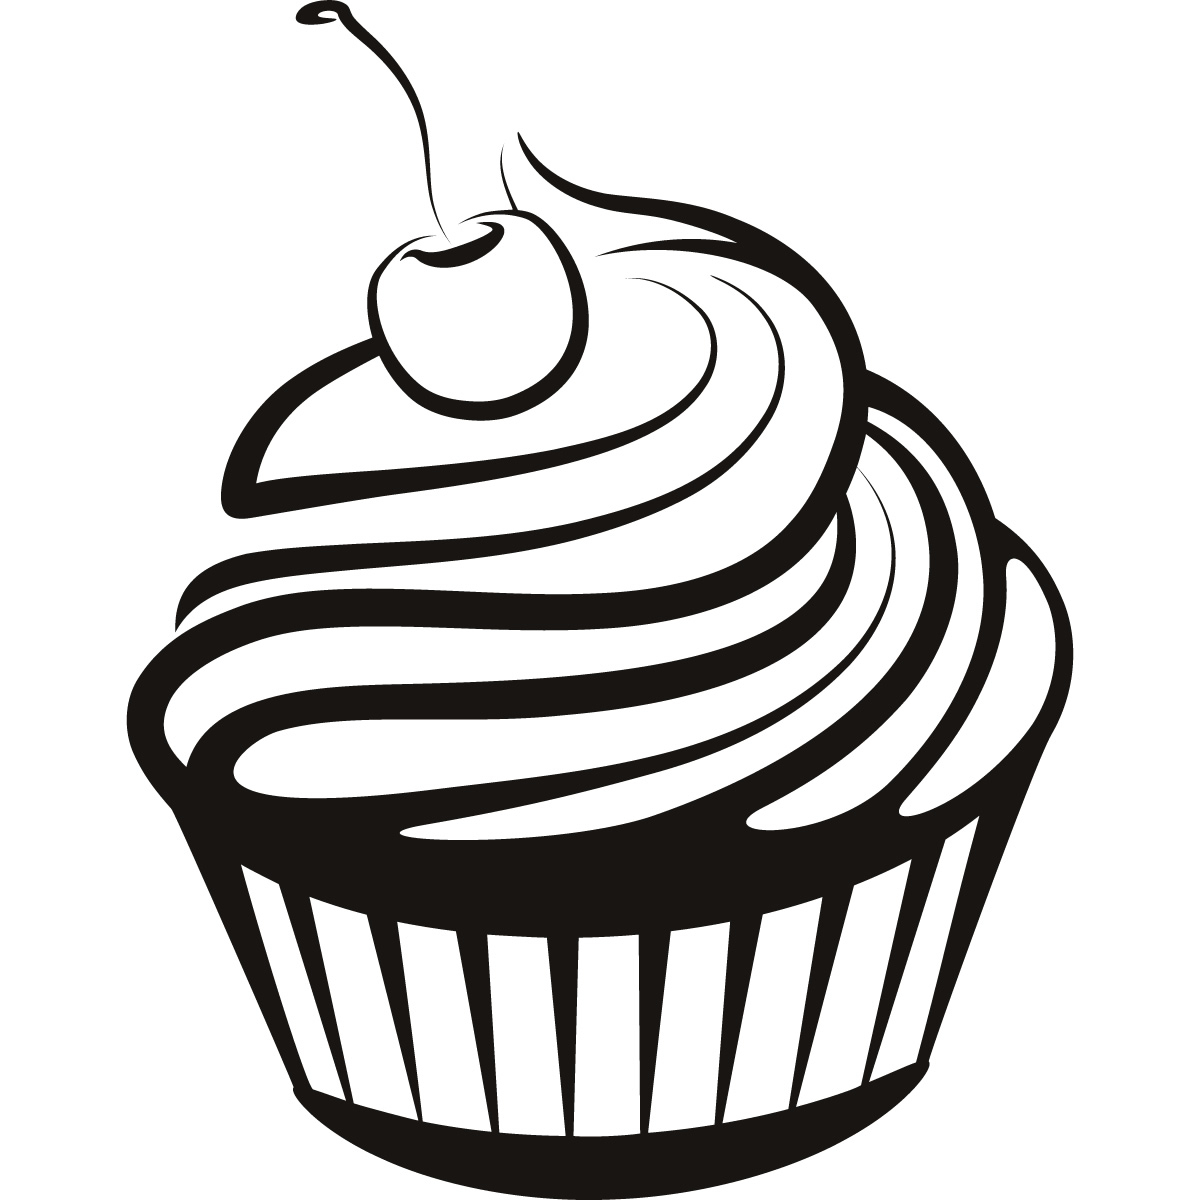 1200x1200 A Drawing Of A Cupcake Simple Cupcake Drawings Cupcake Cherry